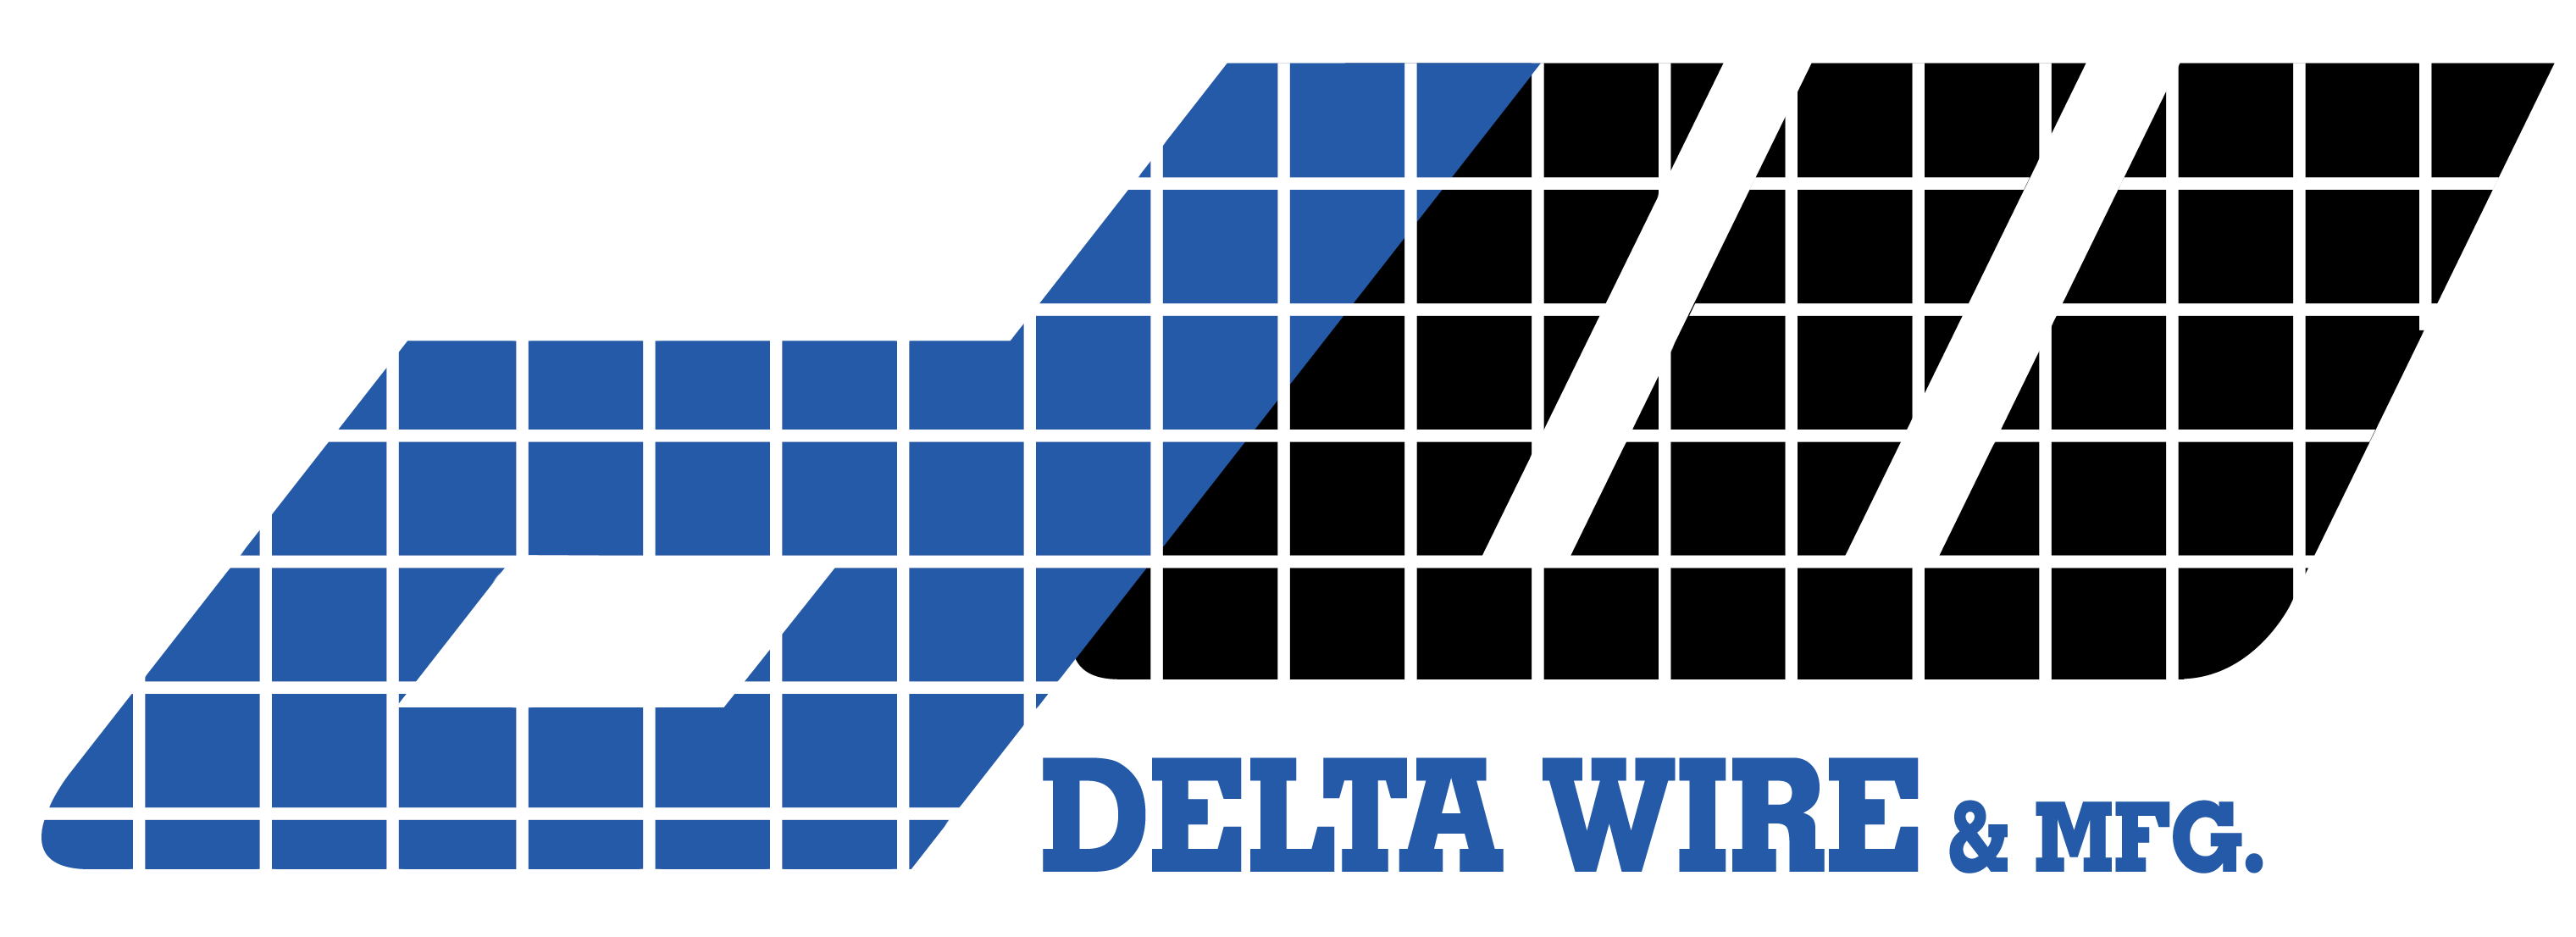 Delta Wire Containers House Wiring Logo